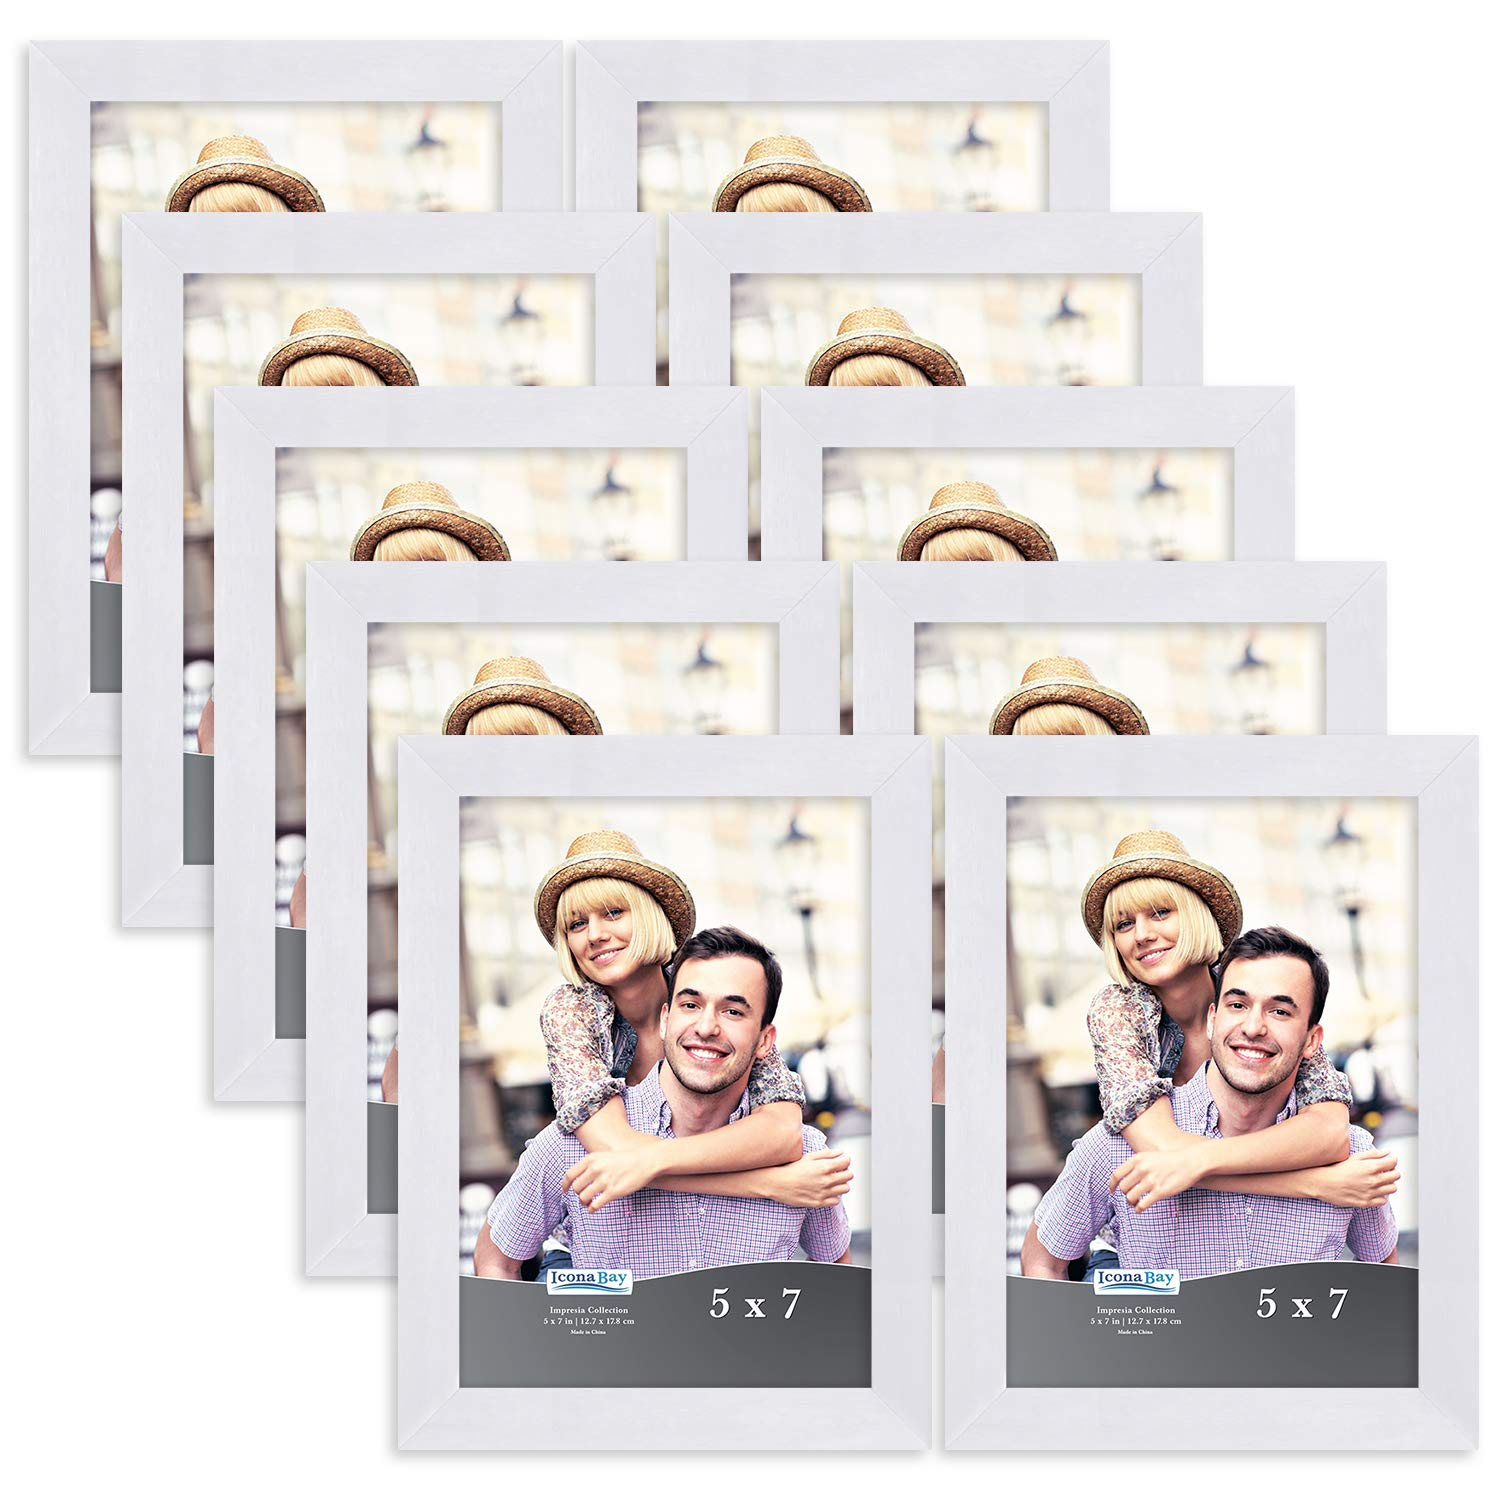 Icona Bay 5x7 Picture Frame Set (10 Pack, White) 5x7 Frame, Tabletop and Wall Hang Hardware Included with Photo Frames, Impresia Collection by Icona Bay